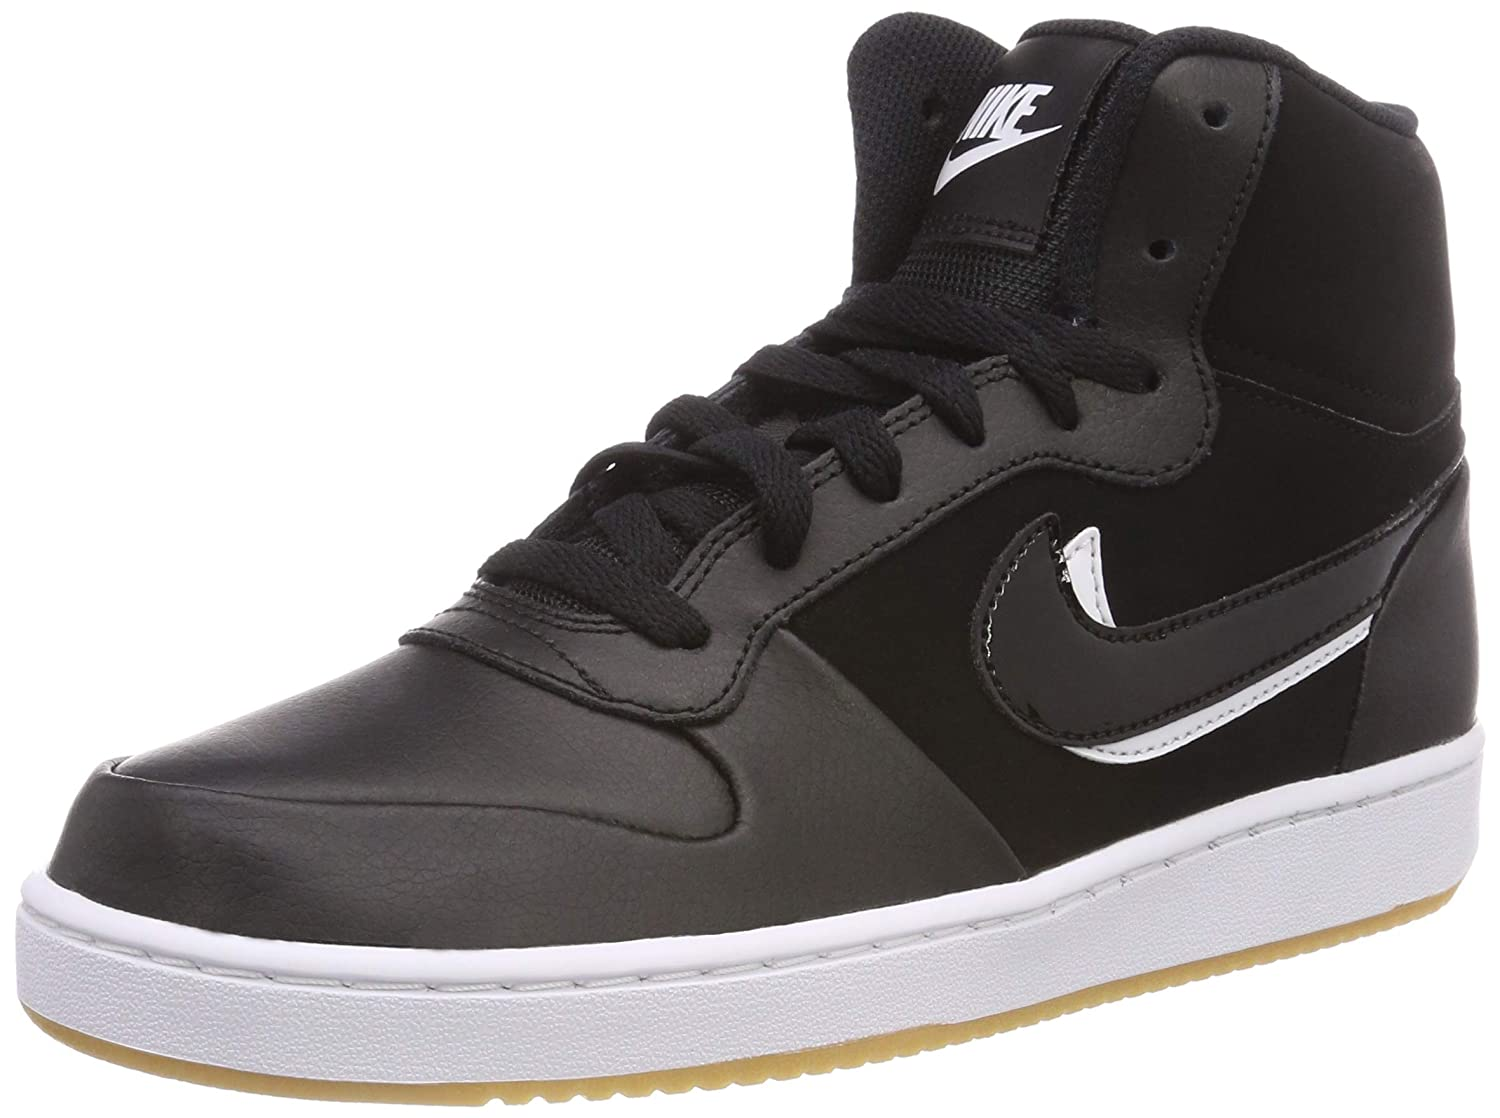 Nike Men's Ebernon Mid Premium Hi-Top Trainers